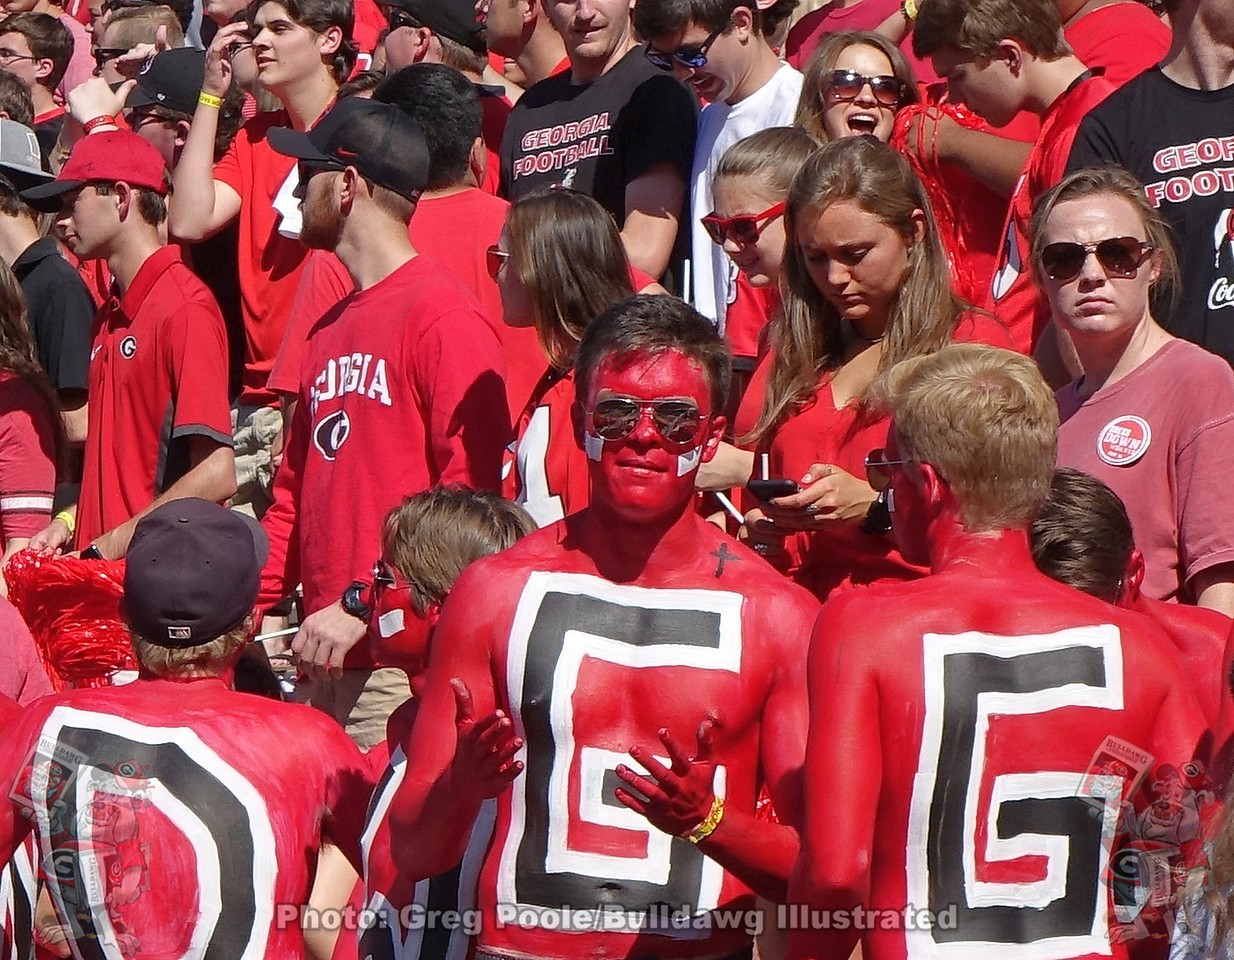 UGA Paint Line during the South Carolina game on Saturday, October 12, 2019